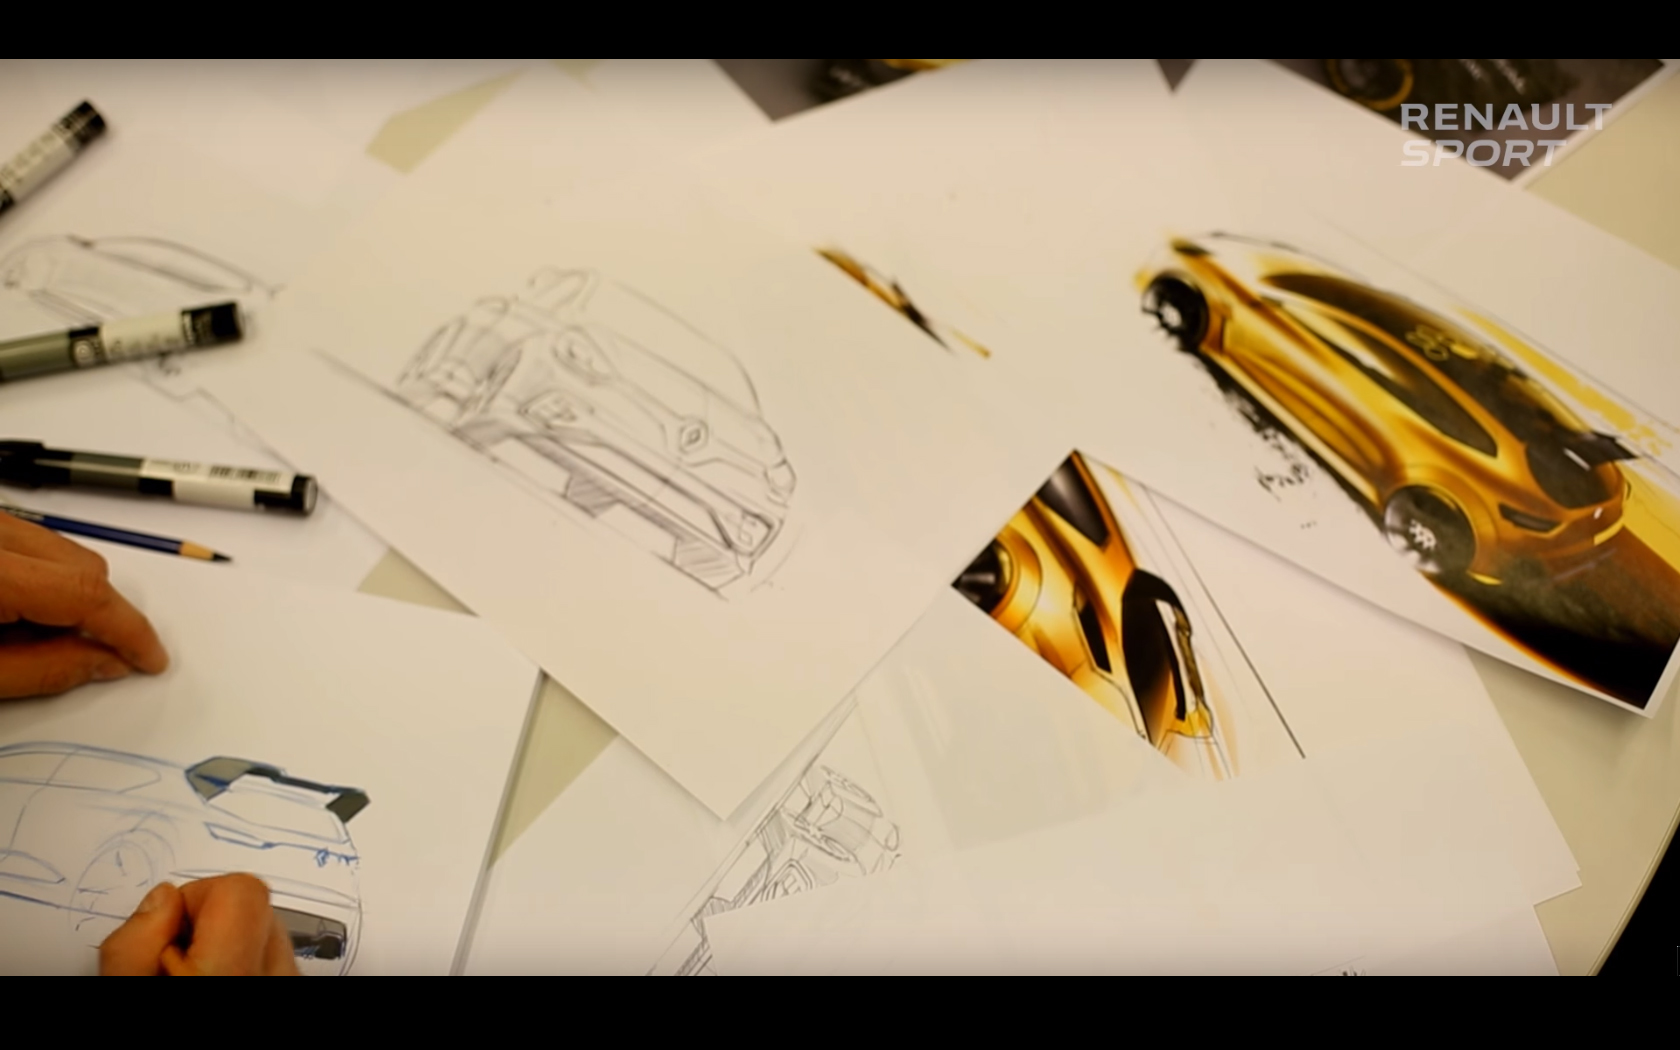 Renault Clio R.S.16 - sketch design by Franck Le Gall